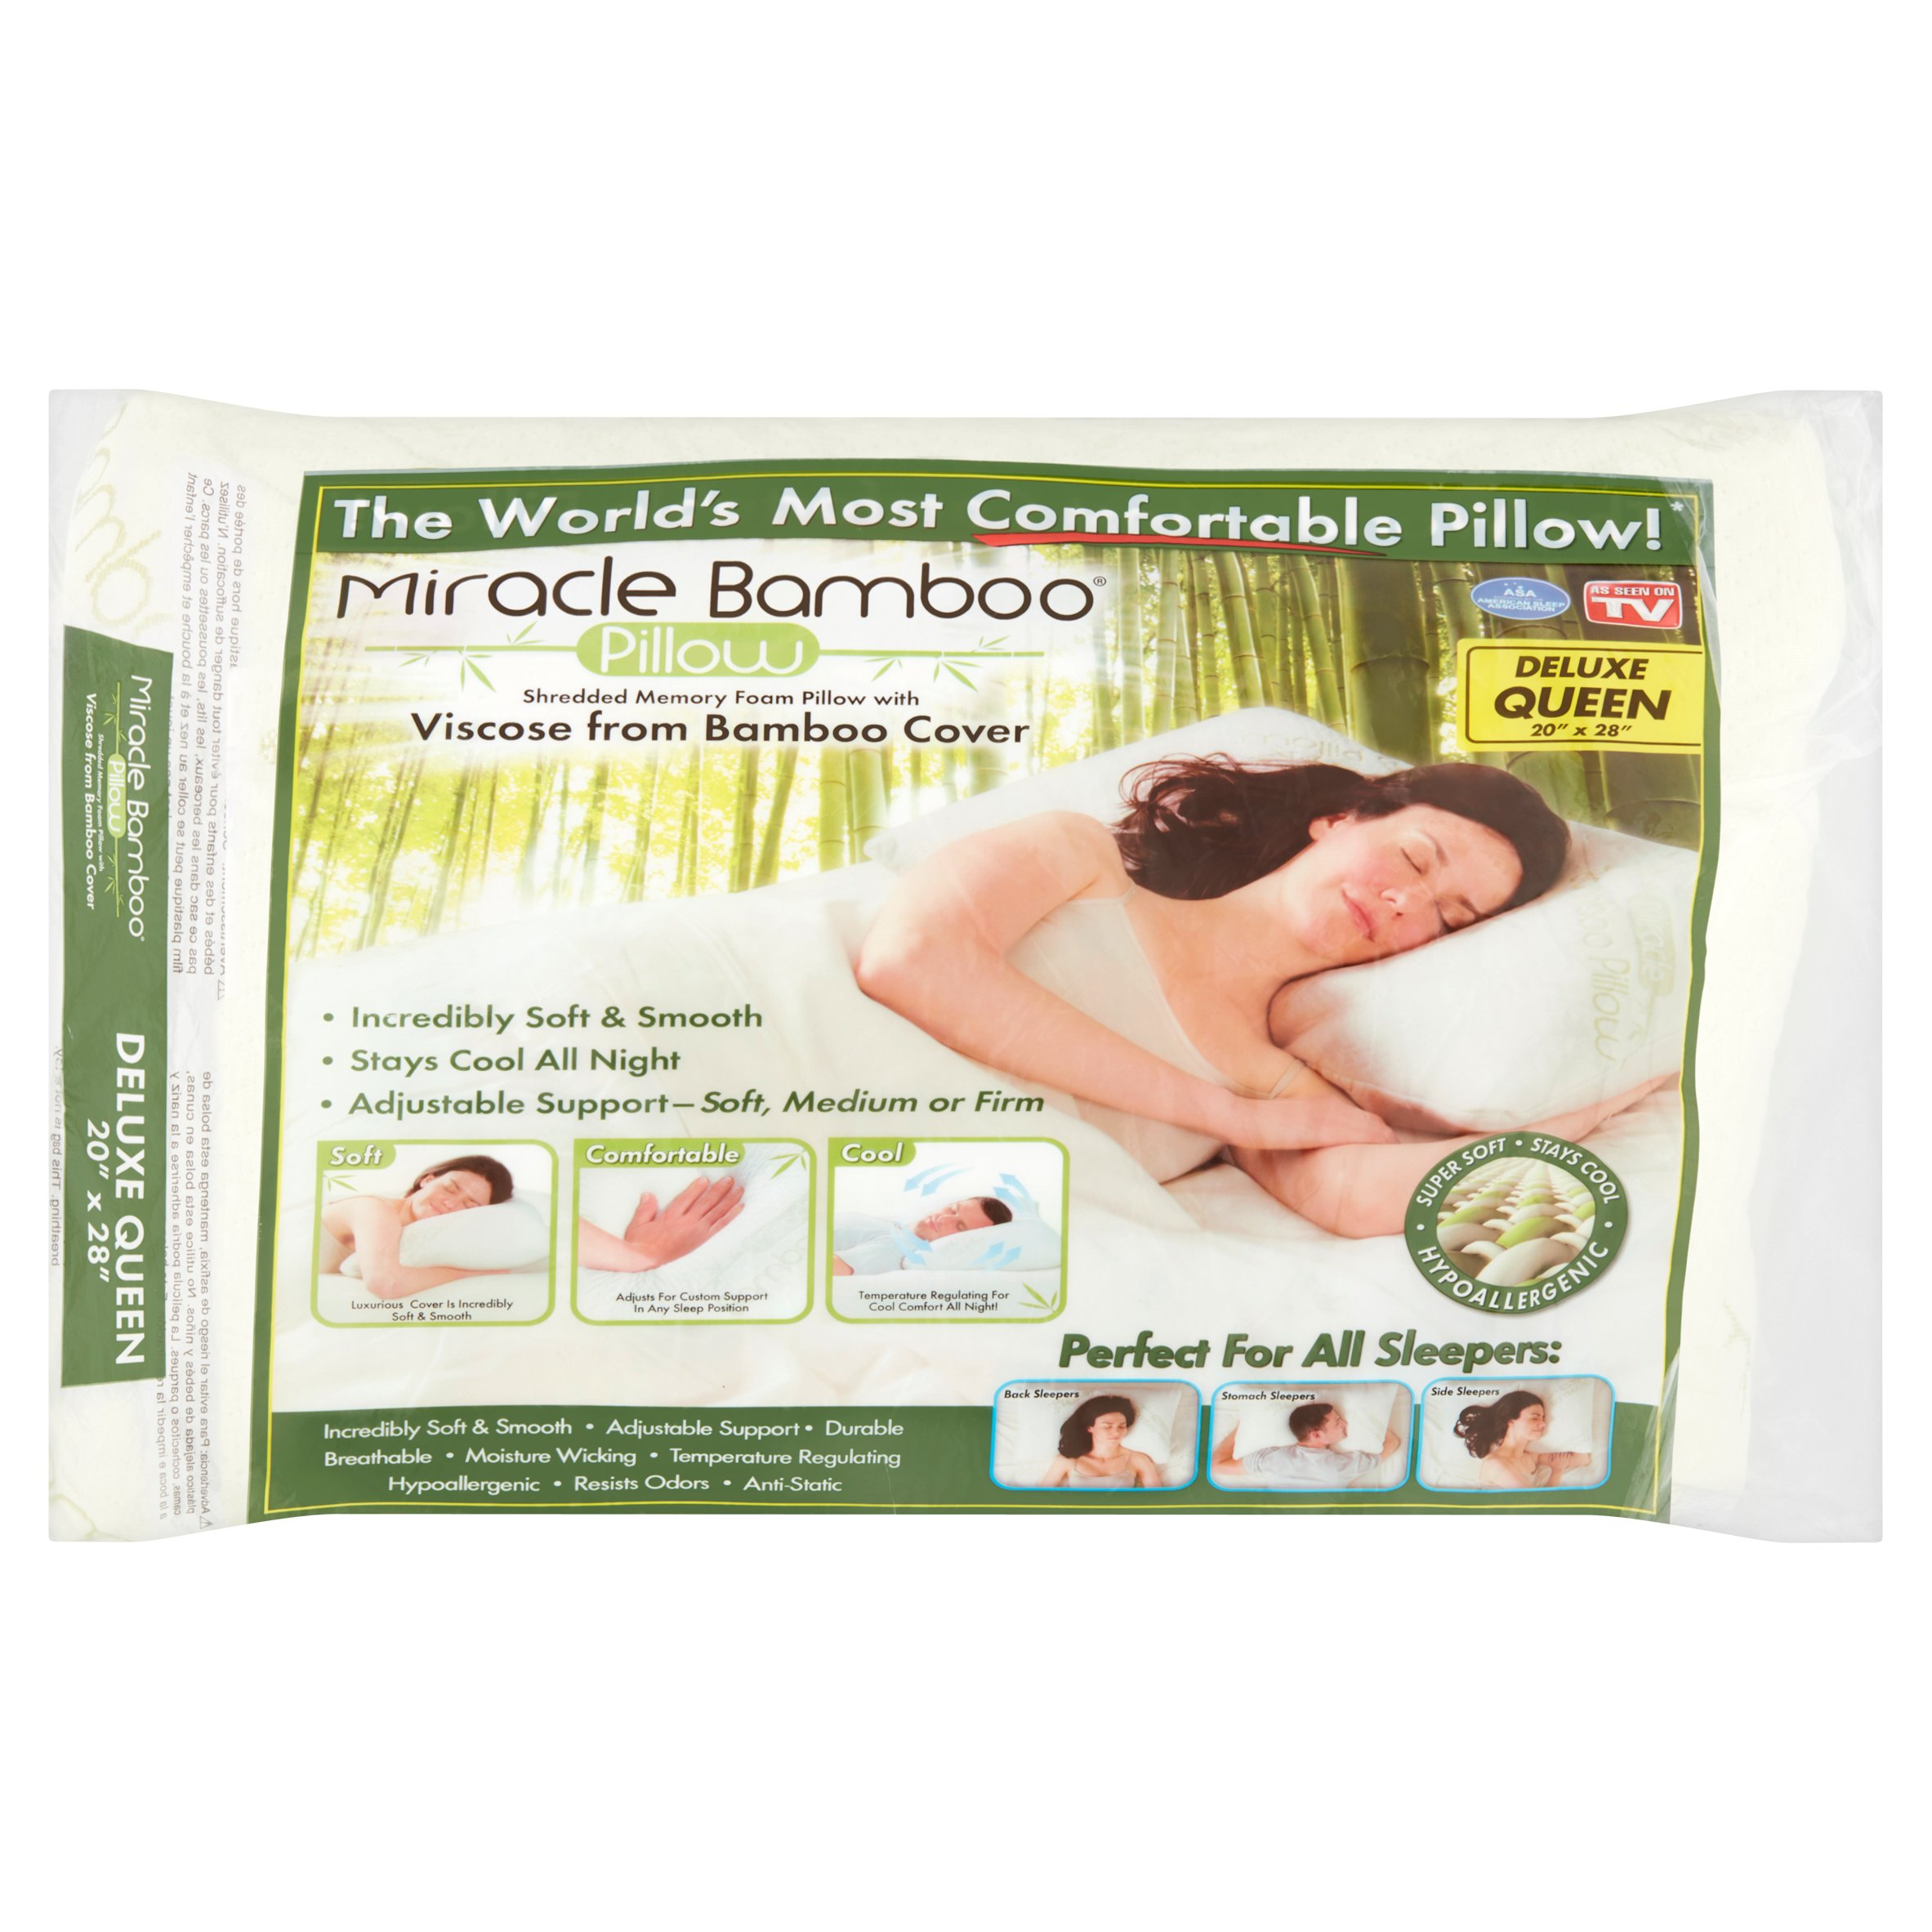 miracle bamboo pillow queen size memory foam pillow with bamboo viscose cover as seen on tv walmart com